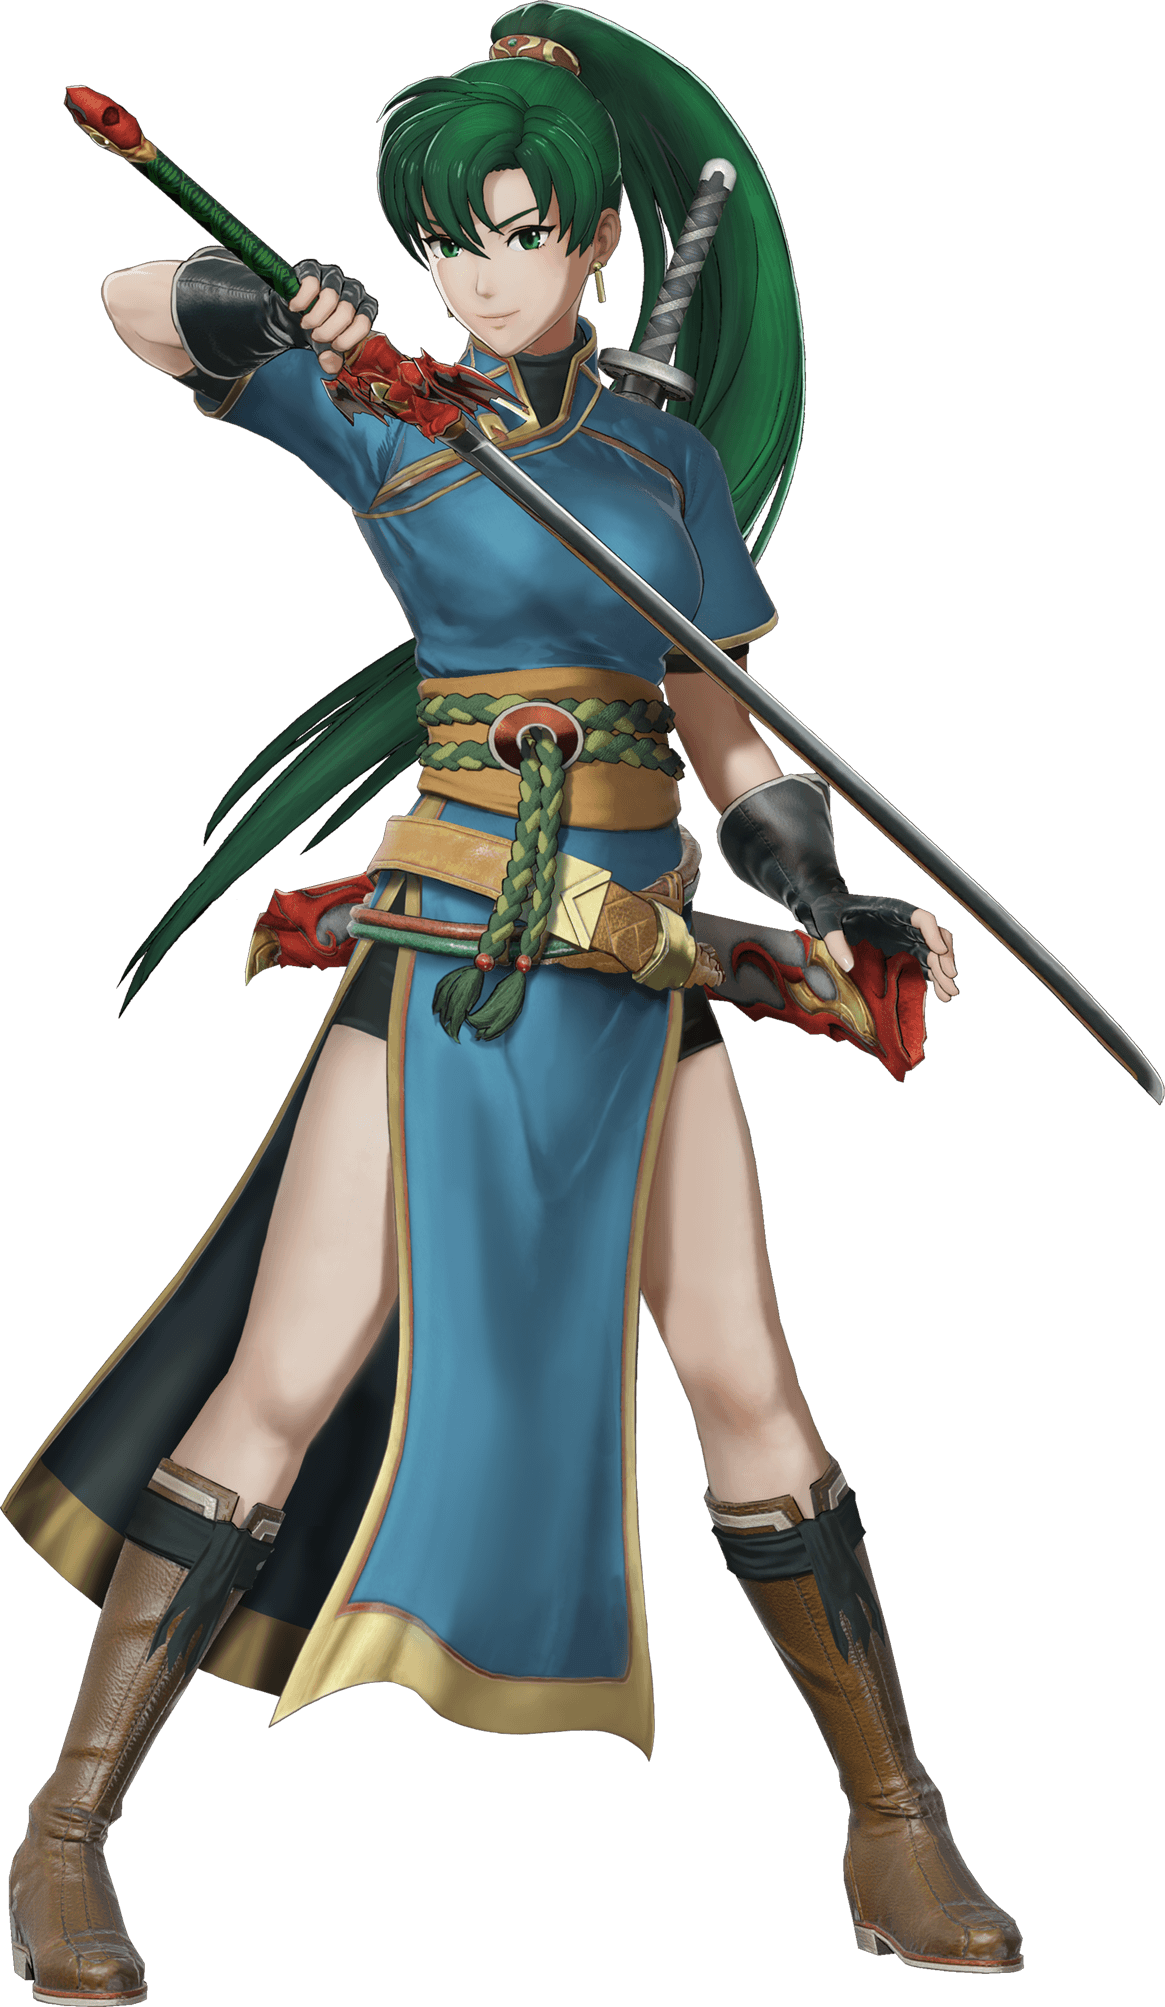 1girl bangs belt boots breasts dress earrings fingerless_gloves fire_emblem fire_emblem:_rekka_no_ken fire_emblem_musou full_body gloves green_eyes green_hair highres holding holding_weapon jewelry knee_boots long_hair looking_at_viewer lyndis_(fire_emblem) medium_breasts official_art pelvic_curtain ponytail sheath short_sleeves shorts smile solo sword transparent_background weapon